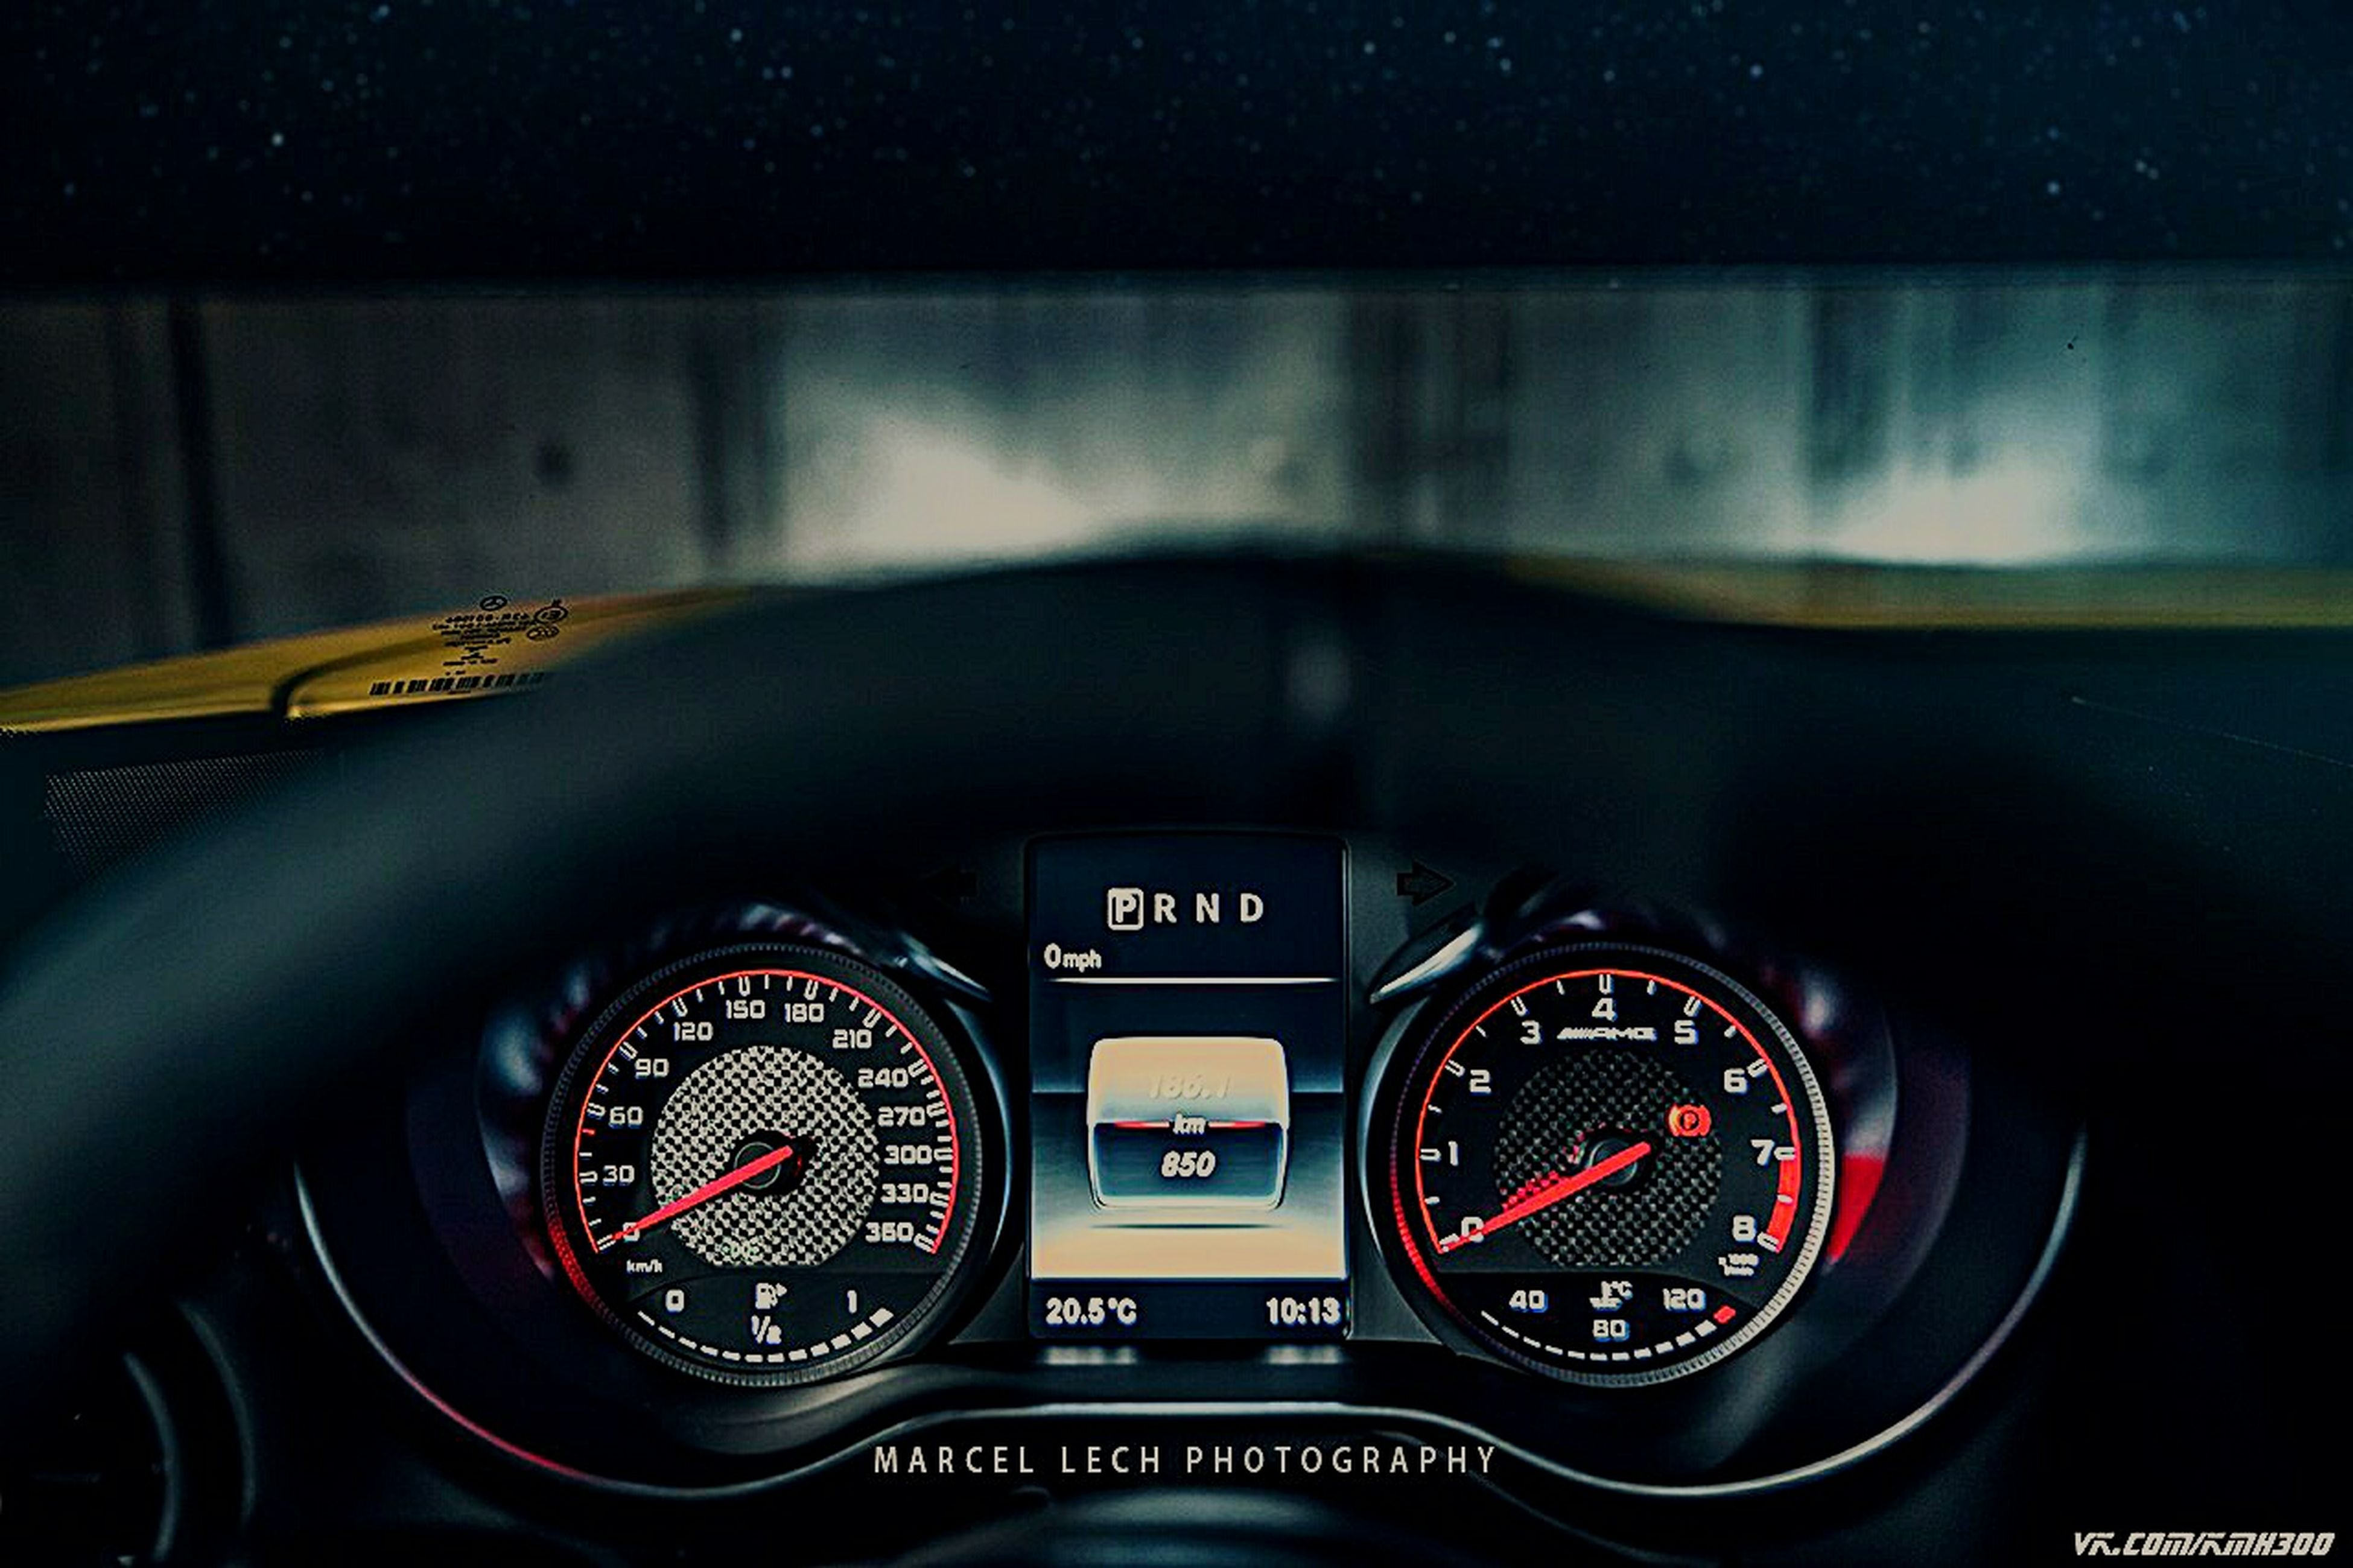 transportation, land vehicle, mode of transport, car, car interior, speedometer, vehicle interior, dashboard, technology, close-up, old-fashioned, retro styled, indoors, part of, travel, windshield, time, steering wheel, lens - optical instrument, clock